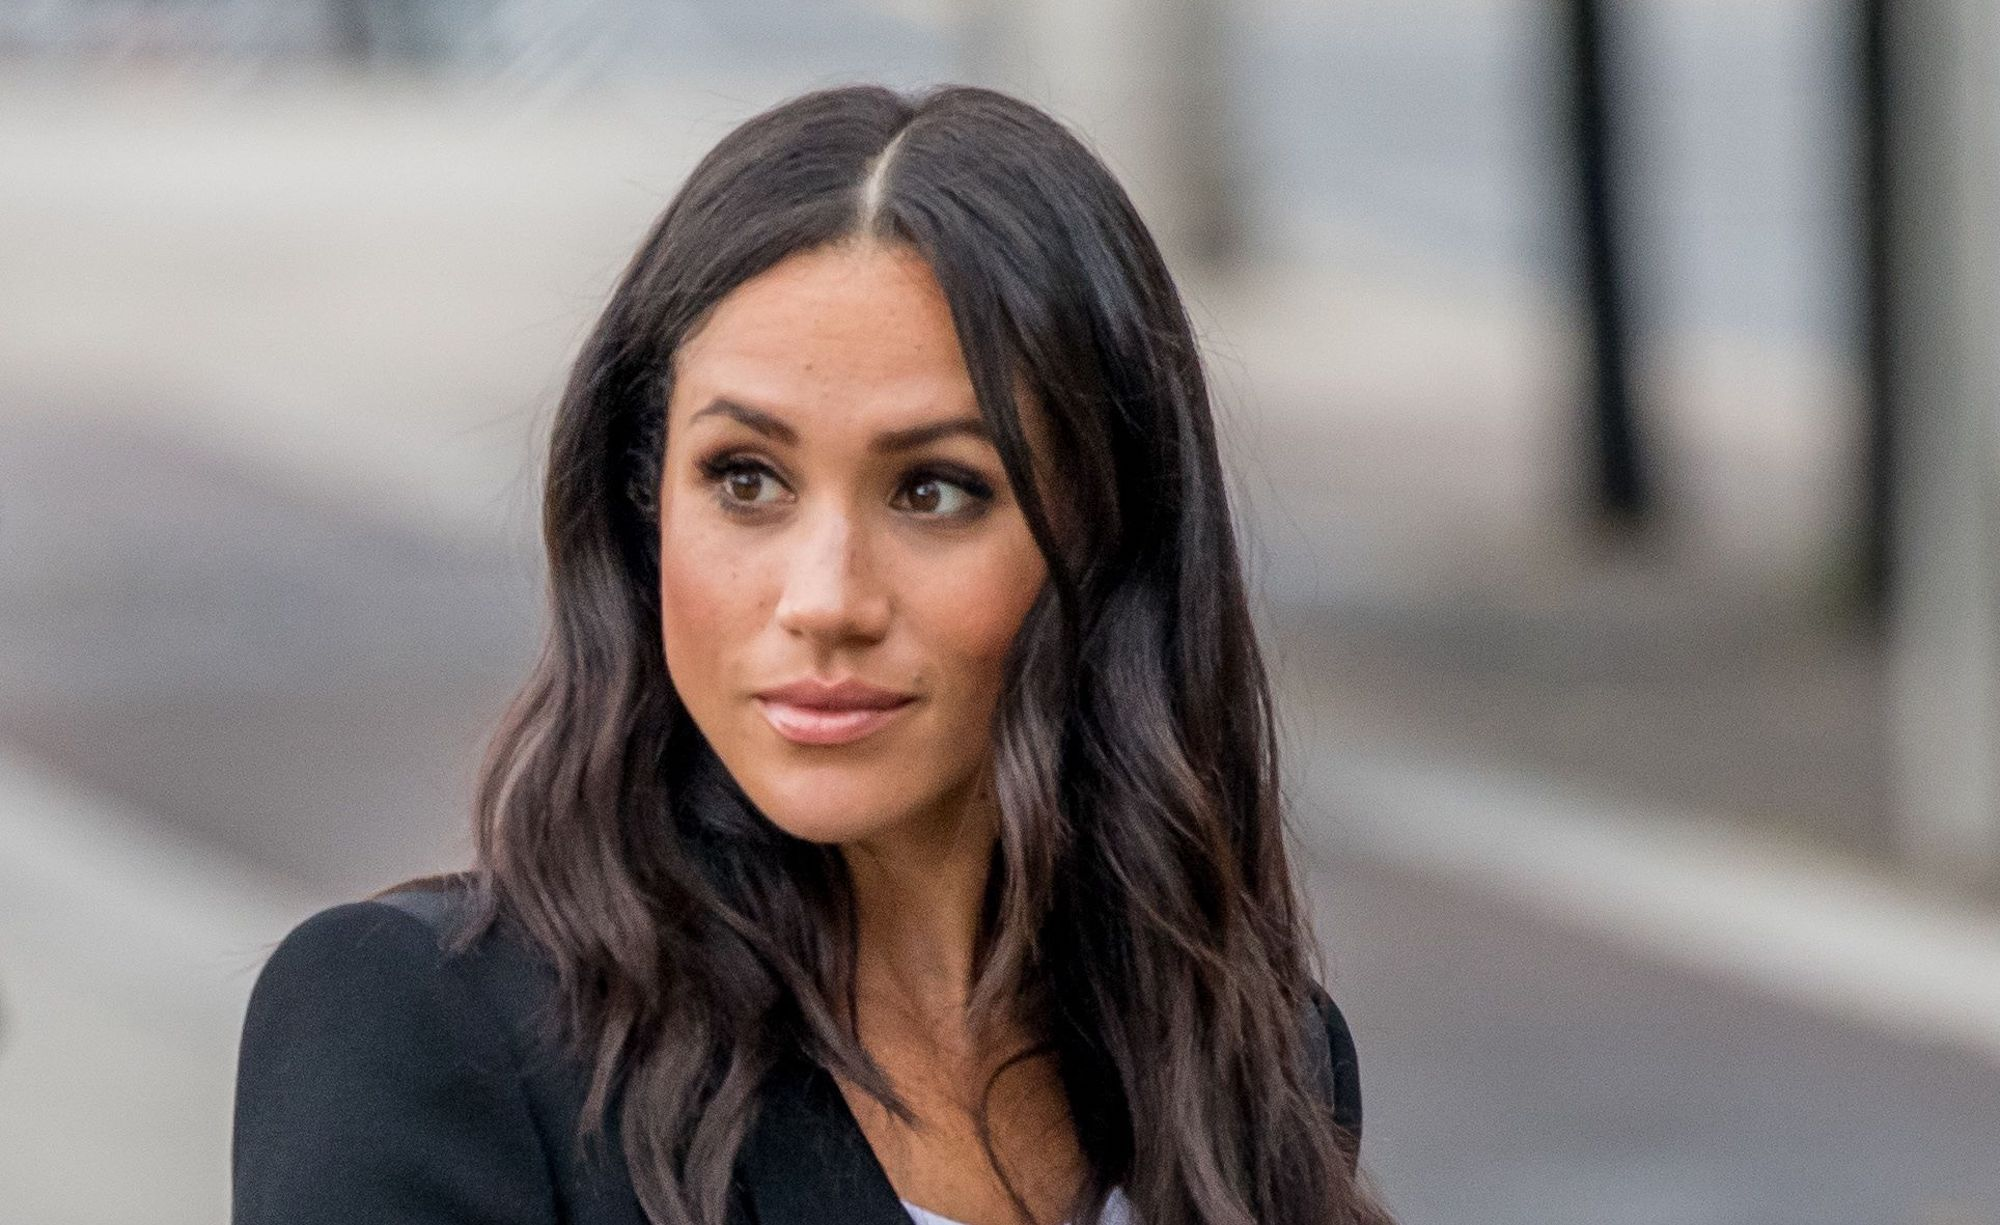 This is the big difficulty Meghan is going to face when she marries Prince Harry